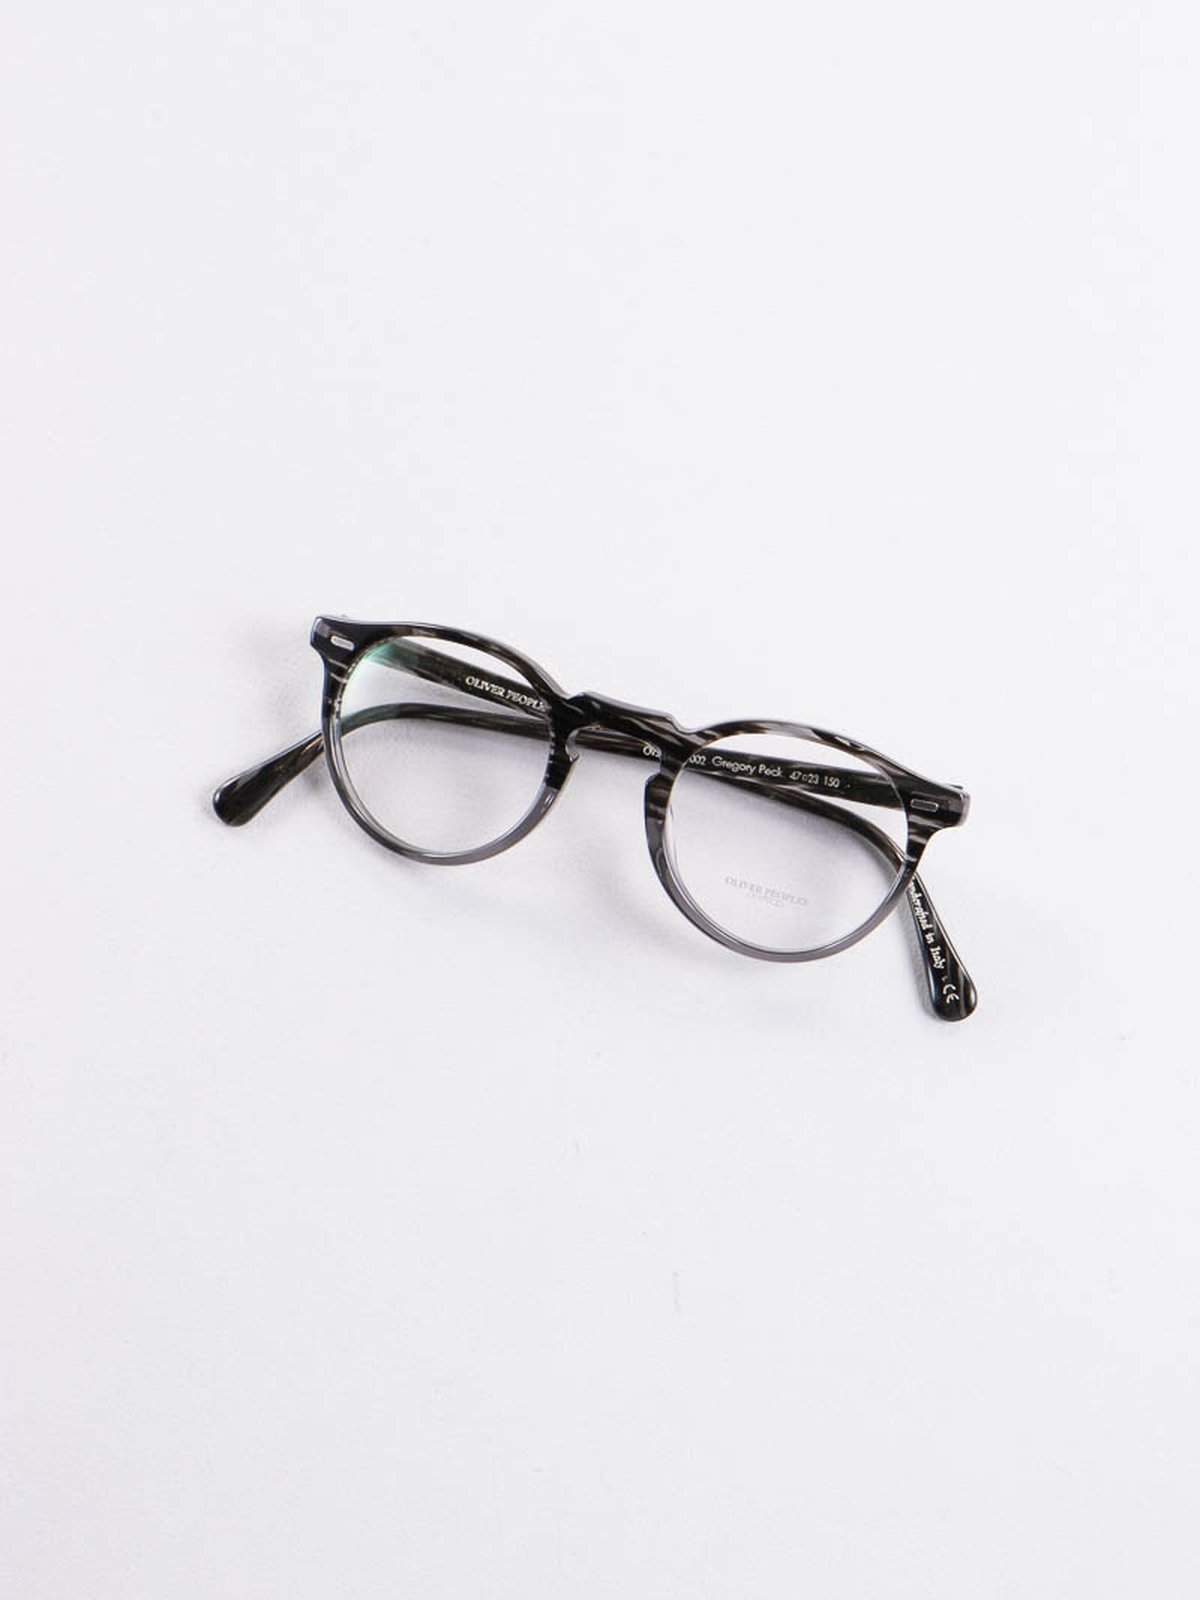 Storm Gregory Peck Optical Frame by Oliver Peoples – The Bureau ...